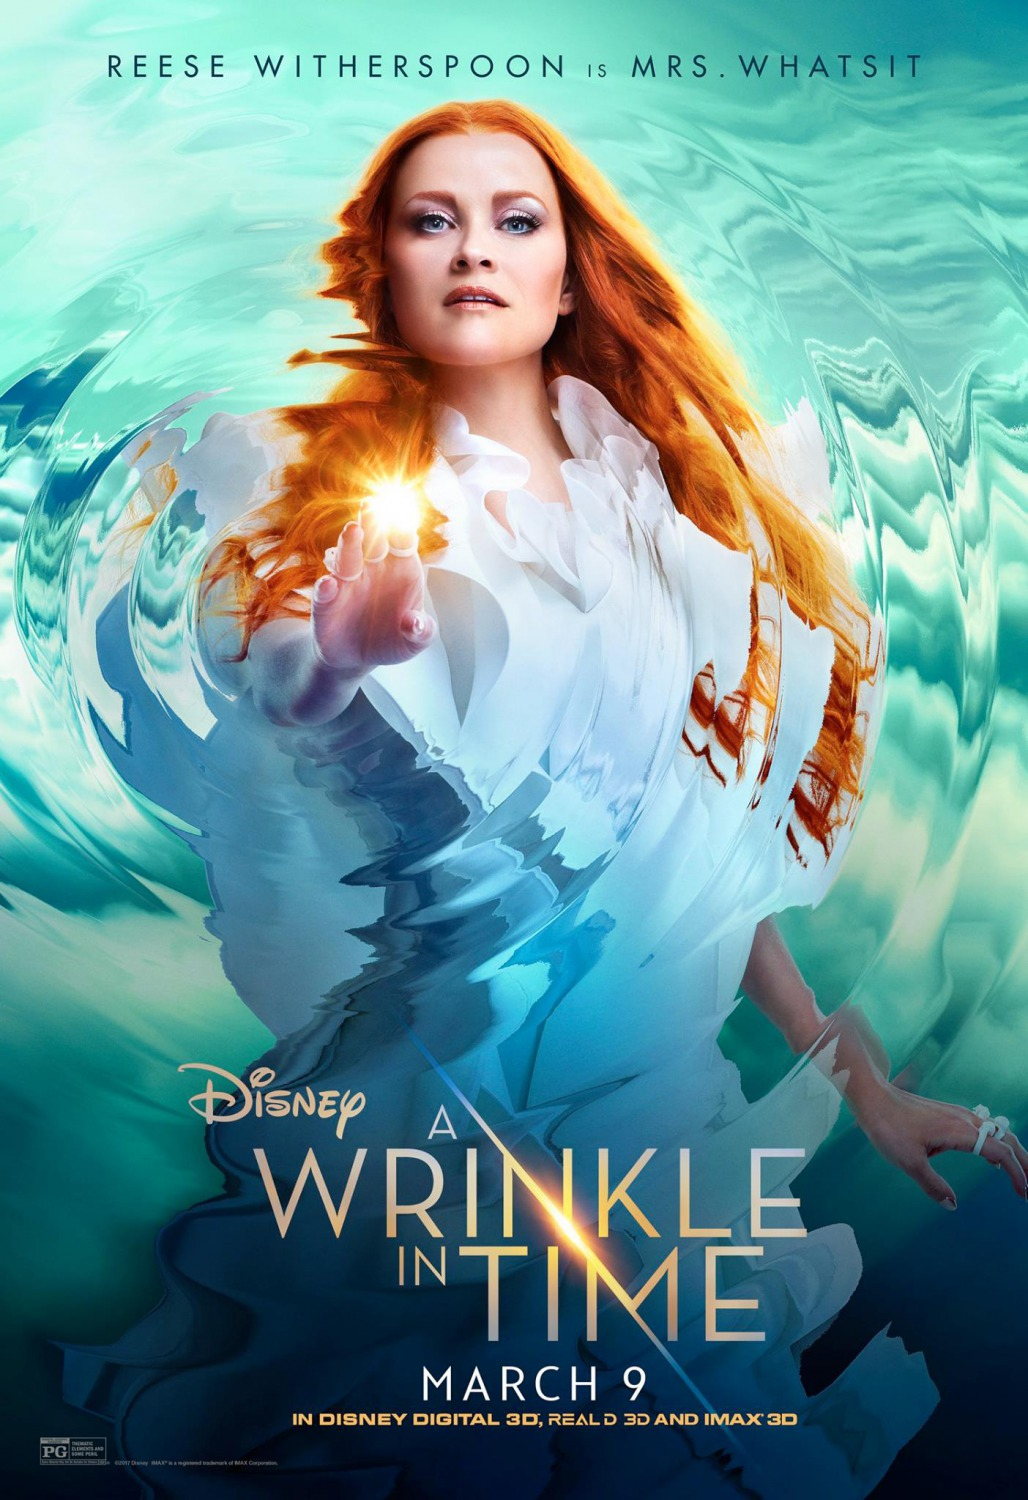 a wrinkle in time Ver a wrinkle in time pelicula online en castellano y en latino based on a children's series by the same name meg and charles wallace are aided a wrinkle in time.